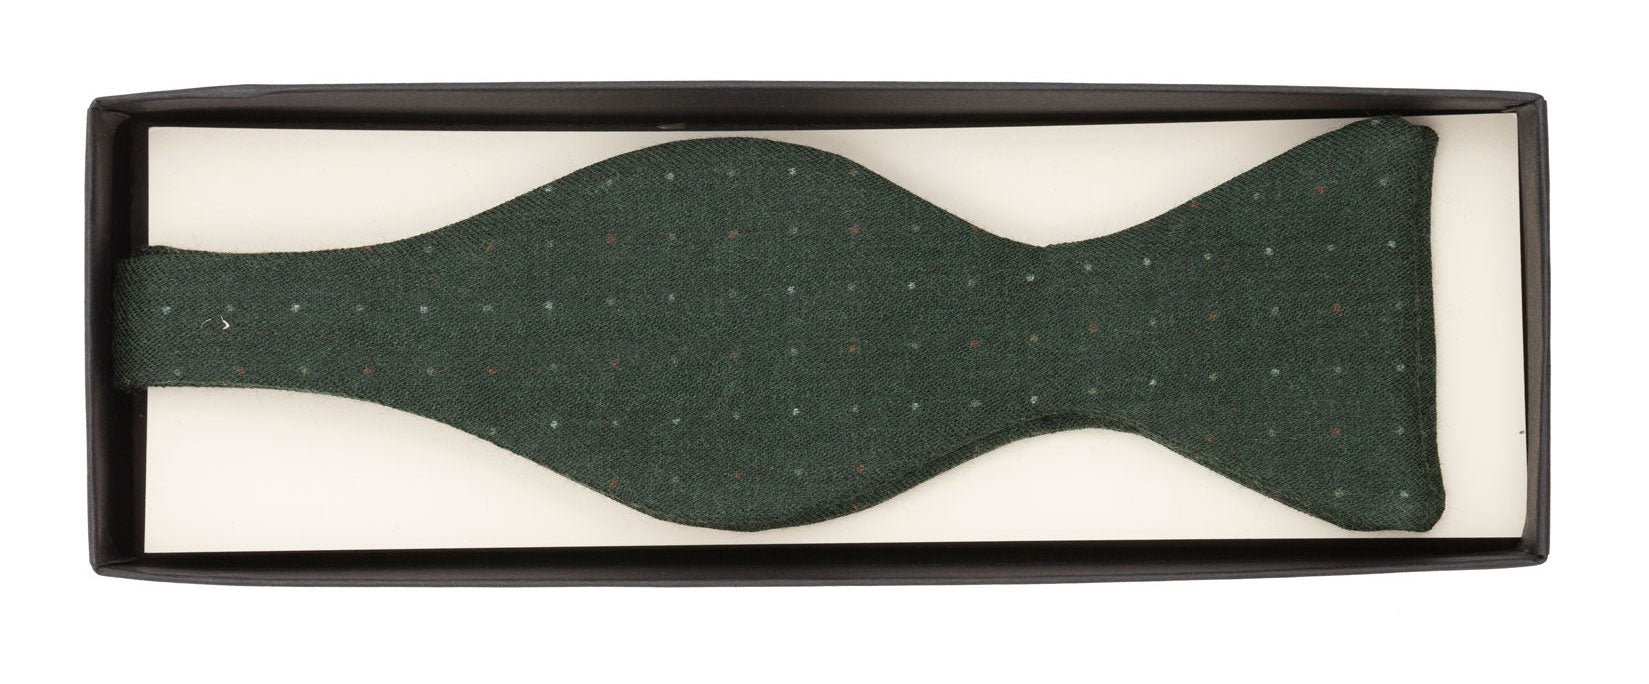 Wool untied bow tie designed and made exclusively for Regent and made in England from soft, high-quality wool.